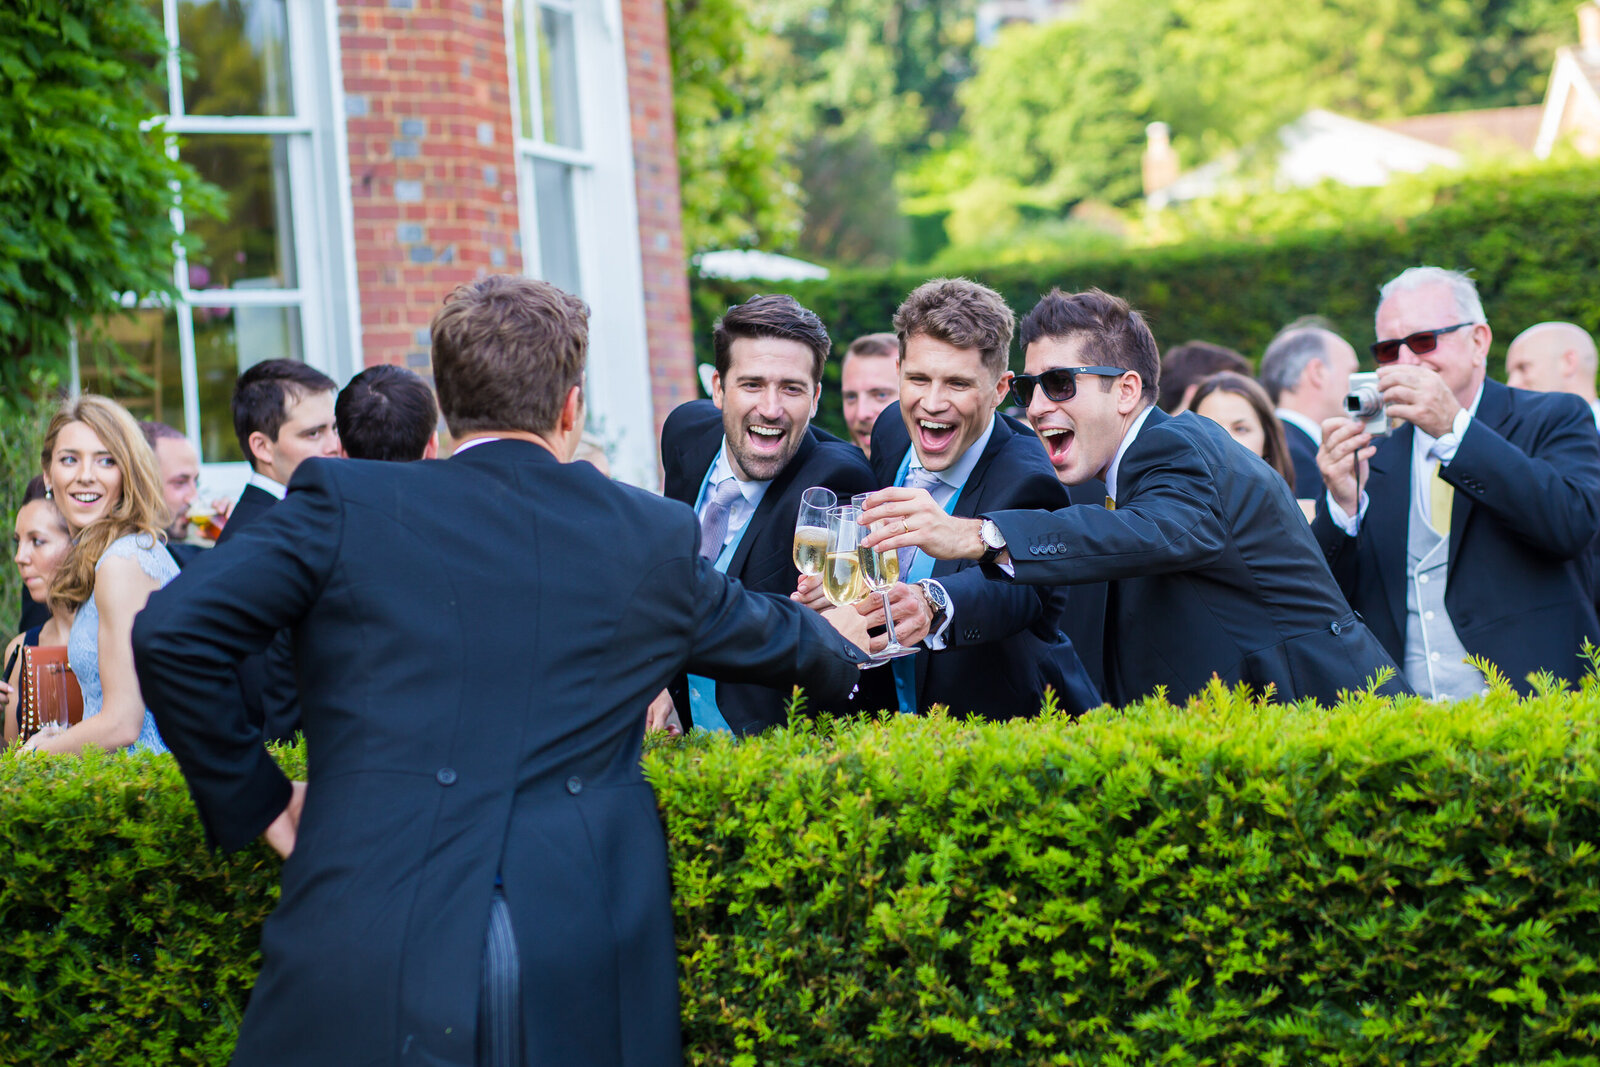 Wedding photography of guests at reception with drinks. Photography by Lynsey Grace Photography